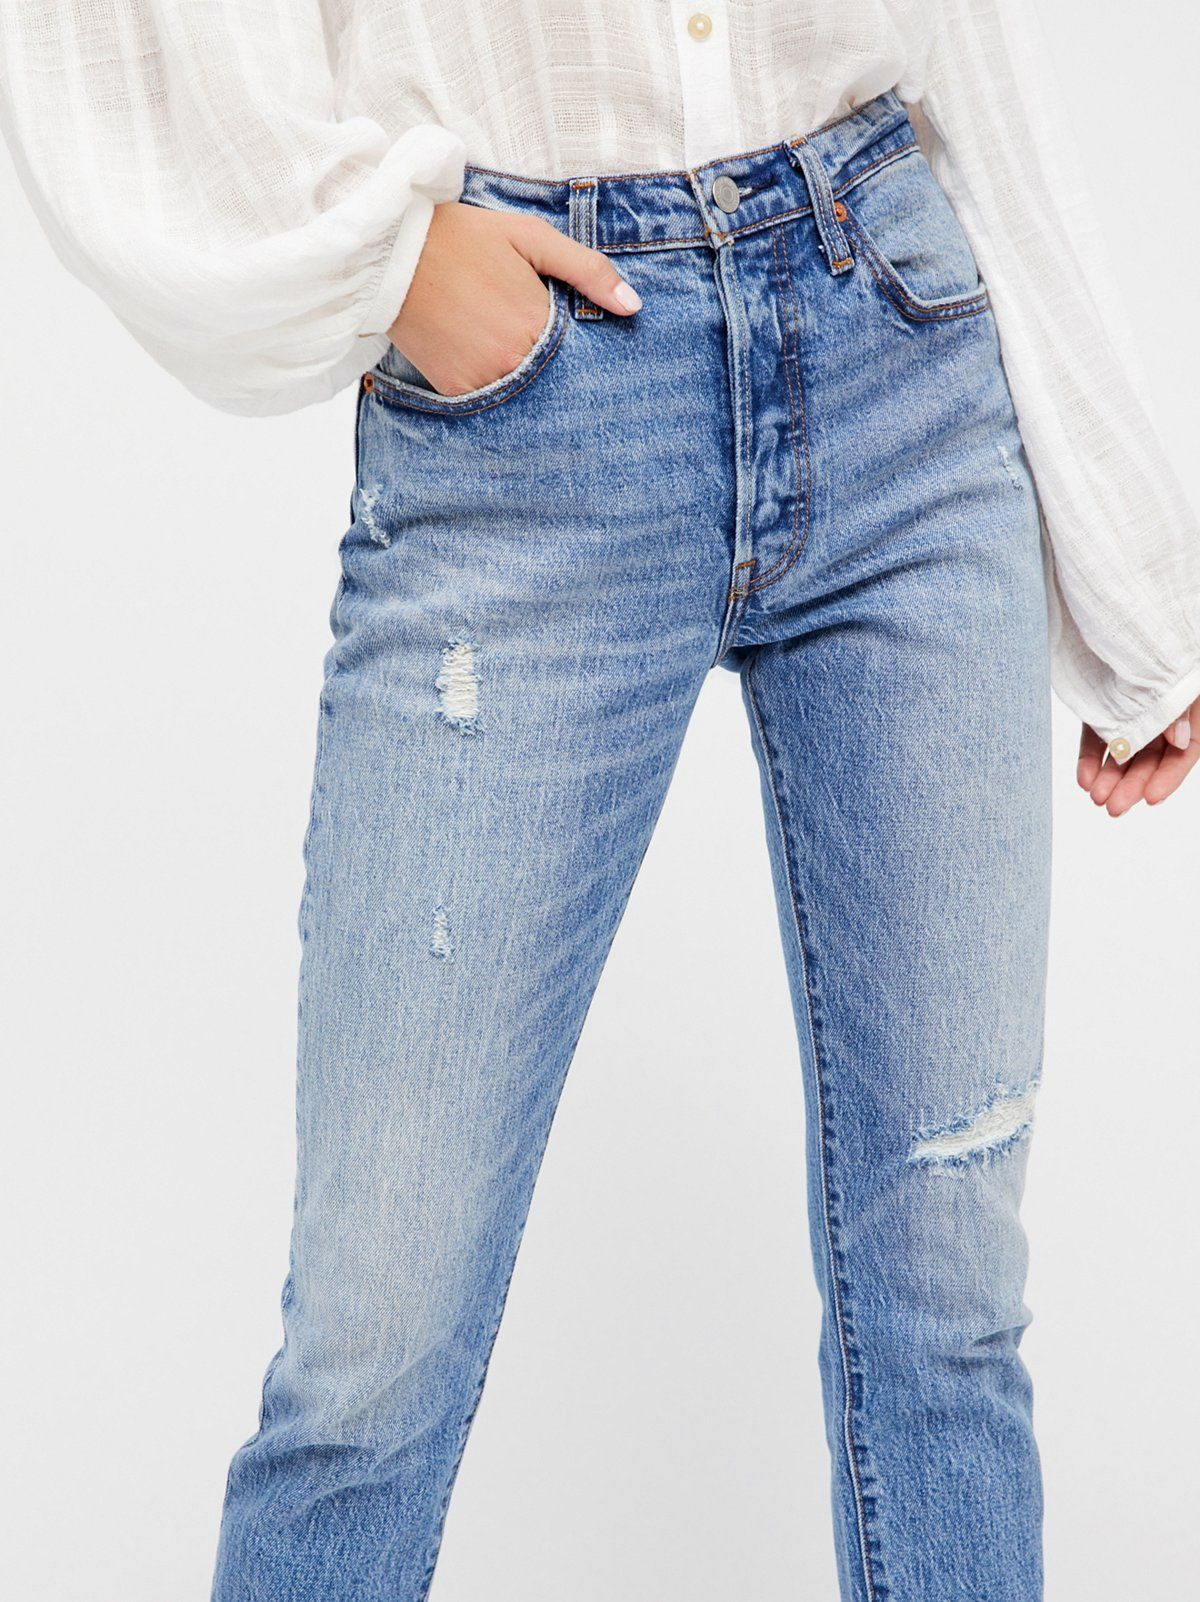 7e3dc779 501 Skinny Jeans | The iconic Levi's 501 has been reimagined with a slimmer  skinny leg